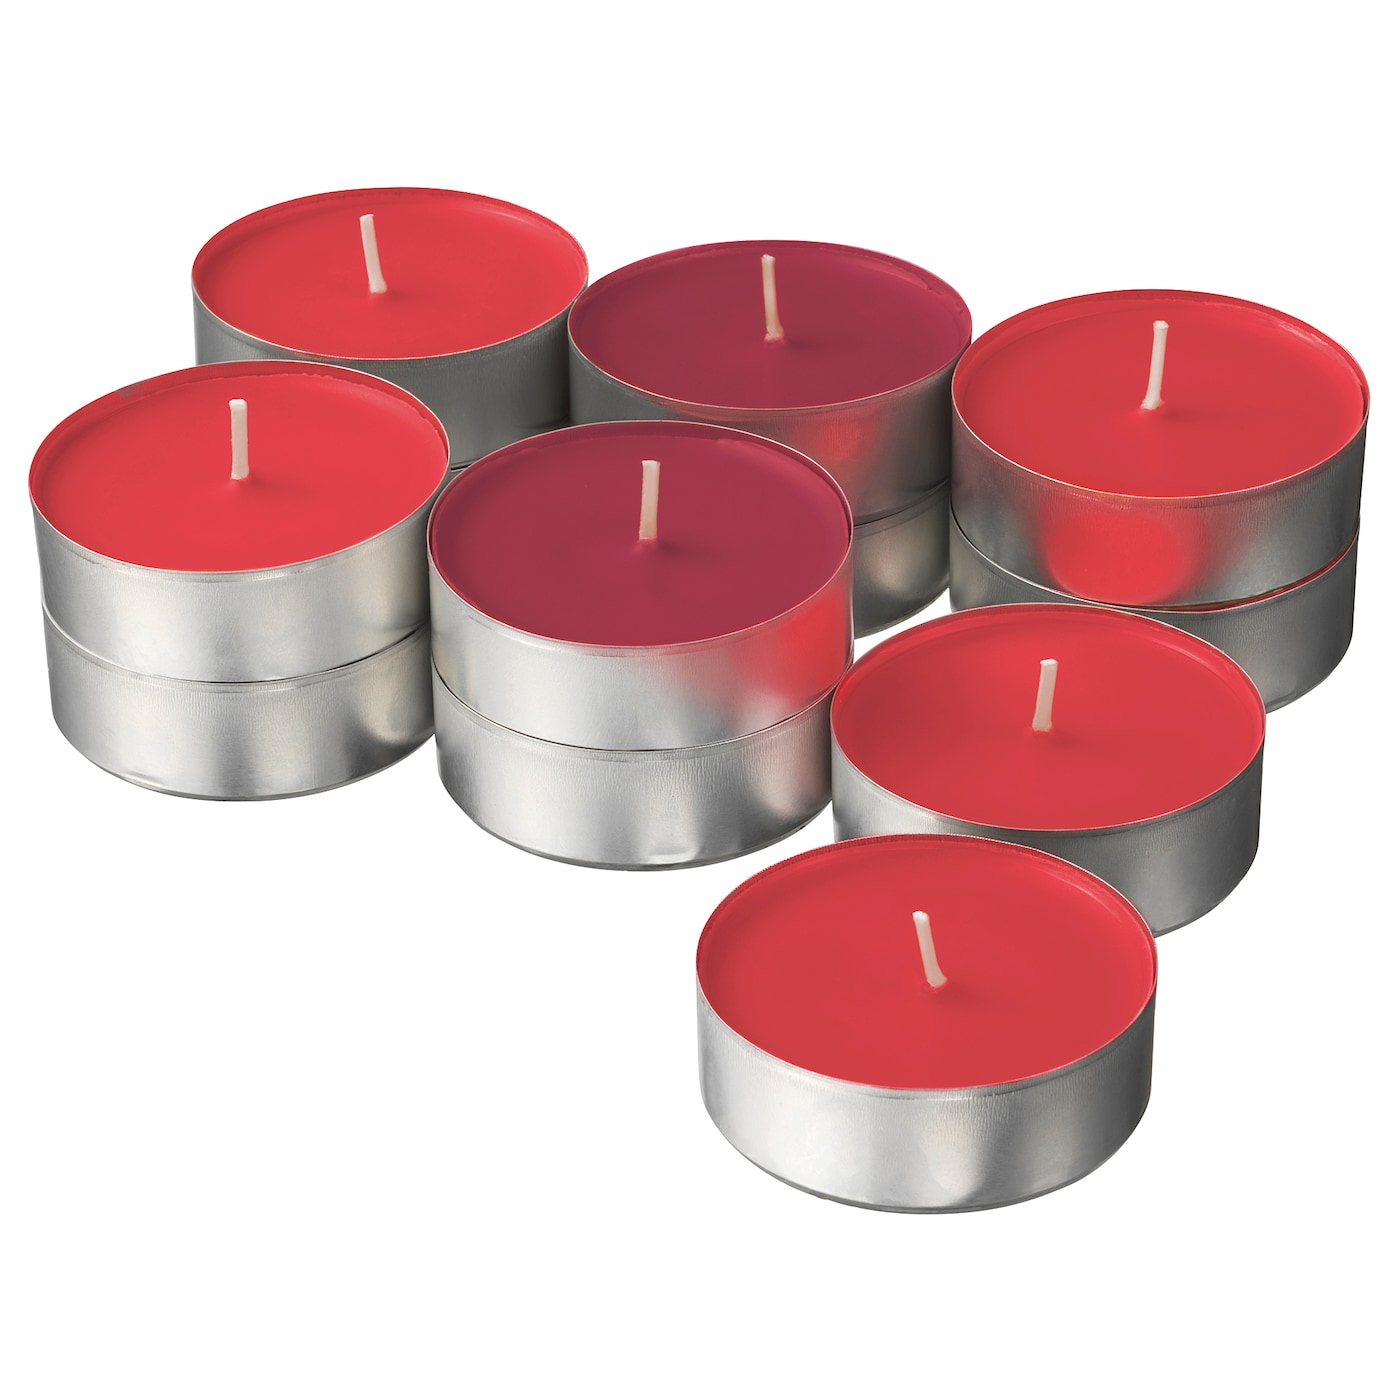 IKEA SINNLIG scented candle in metal cup